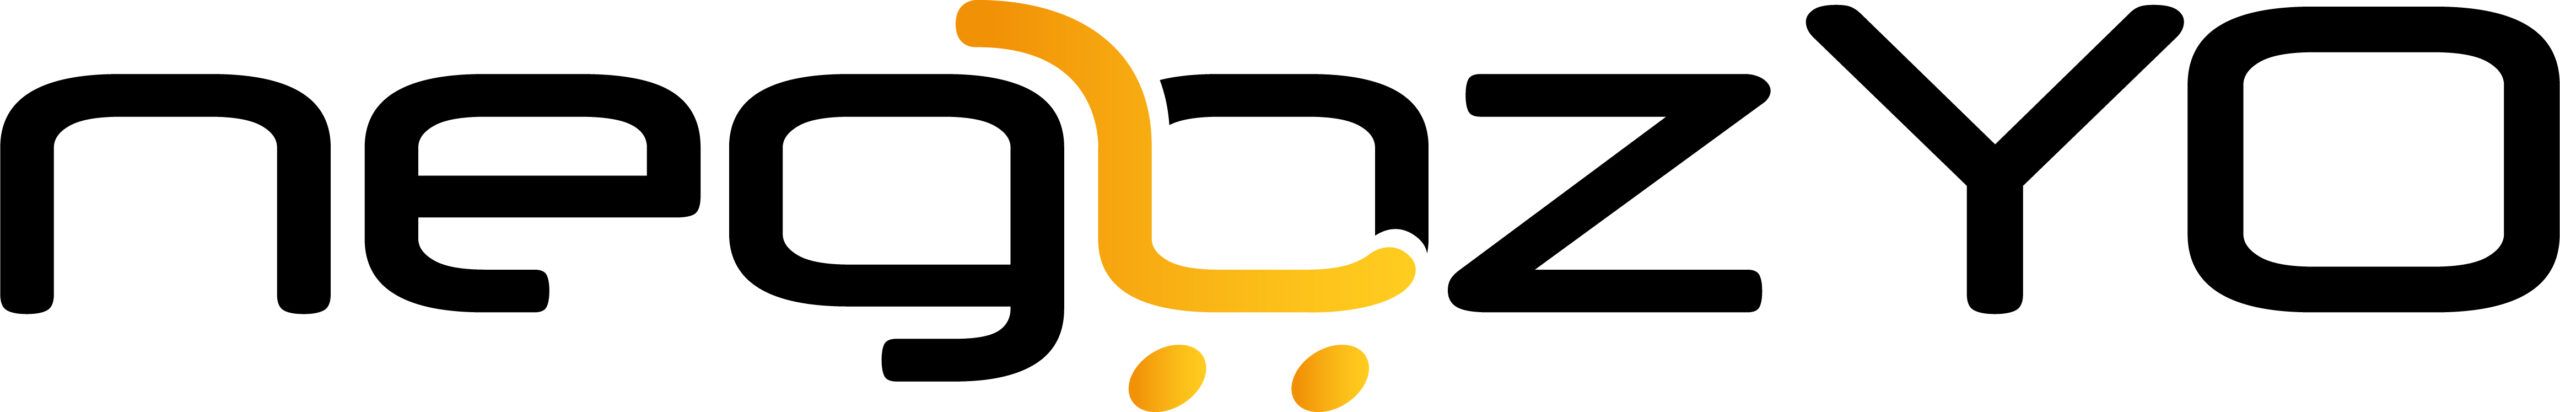 The NegozYO logo, published to 3 Ways to Get Started With Multichannel E-commerce